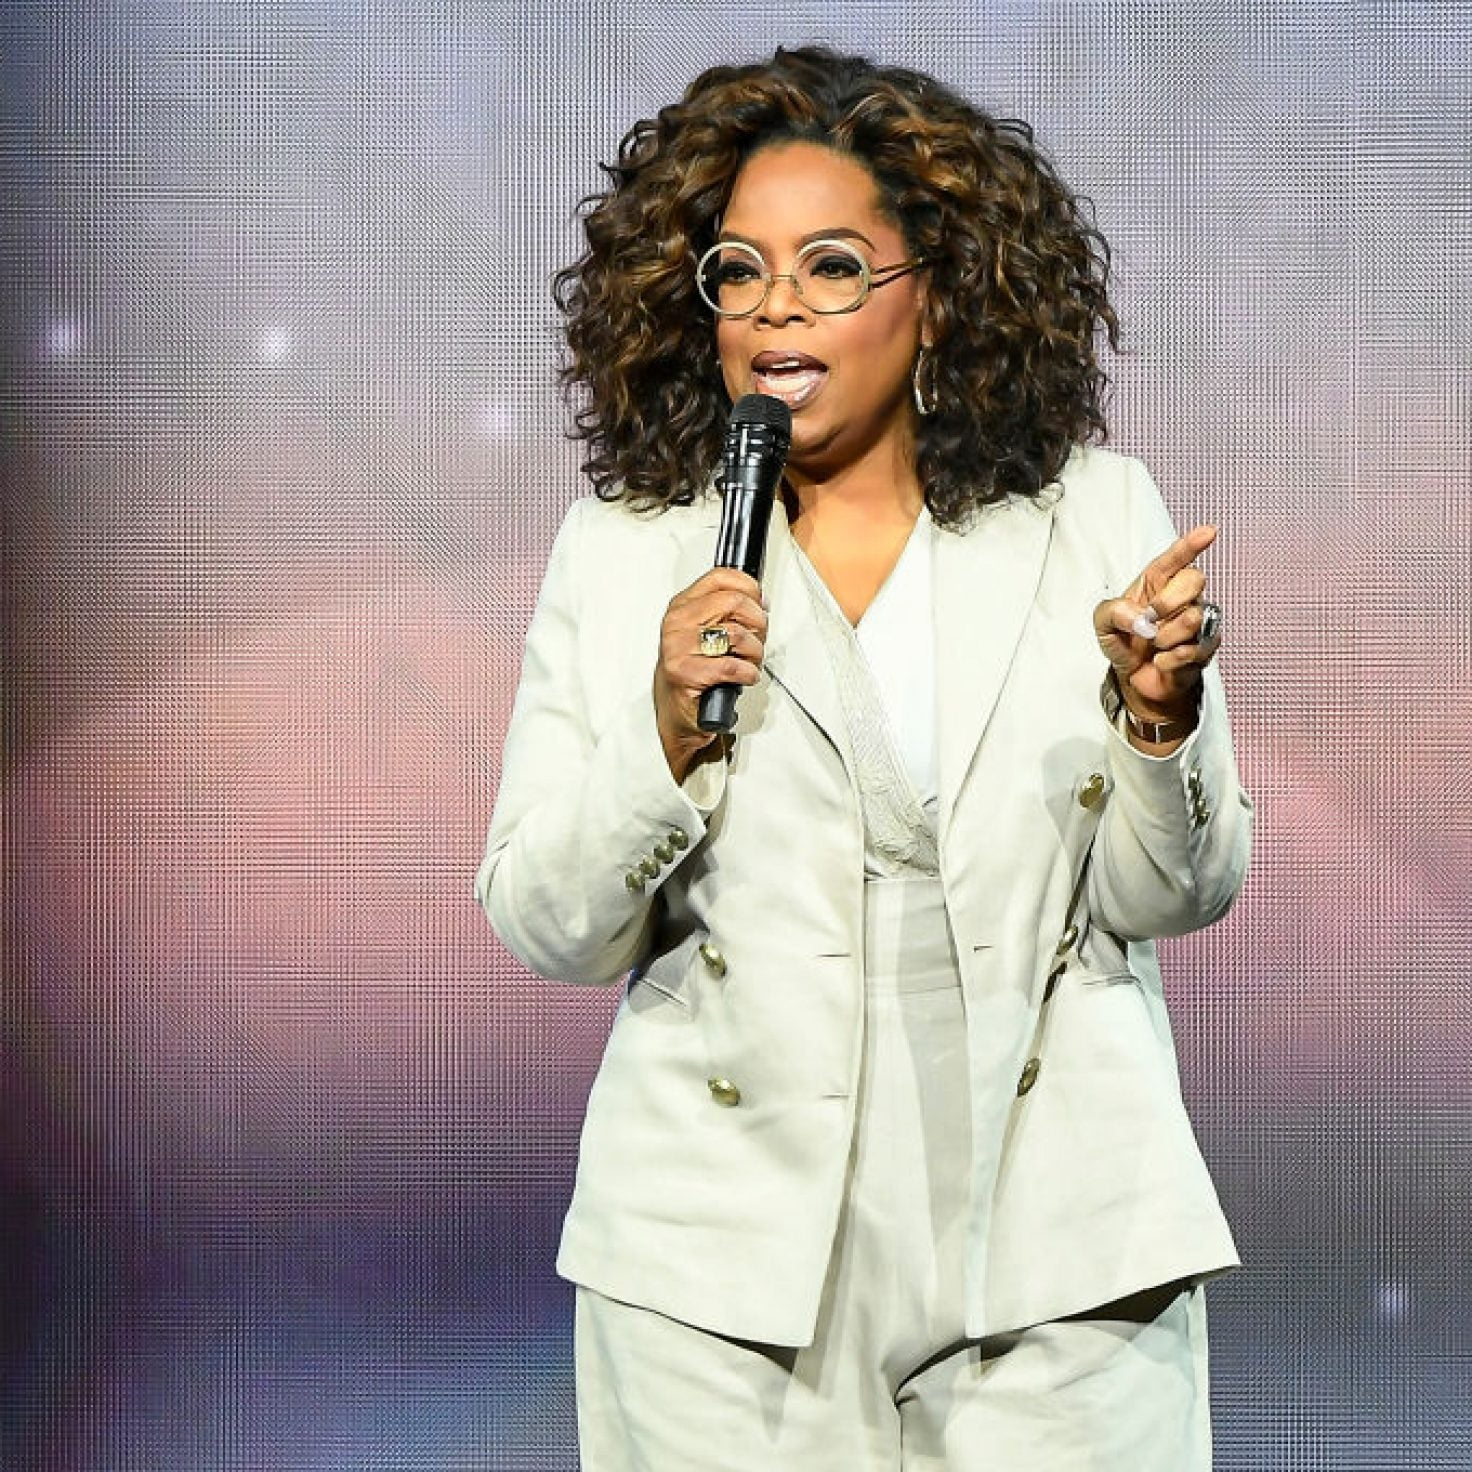 Oprah Winfrey to Host Virtual 'Your Life in Focus' Wellness Tour